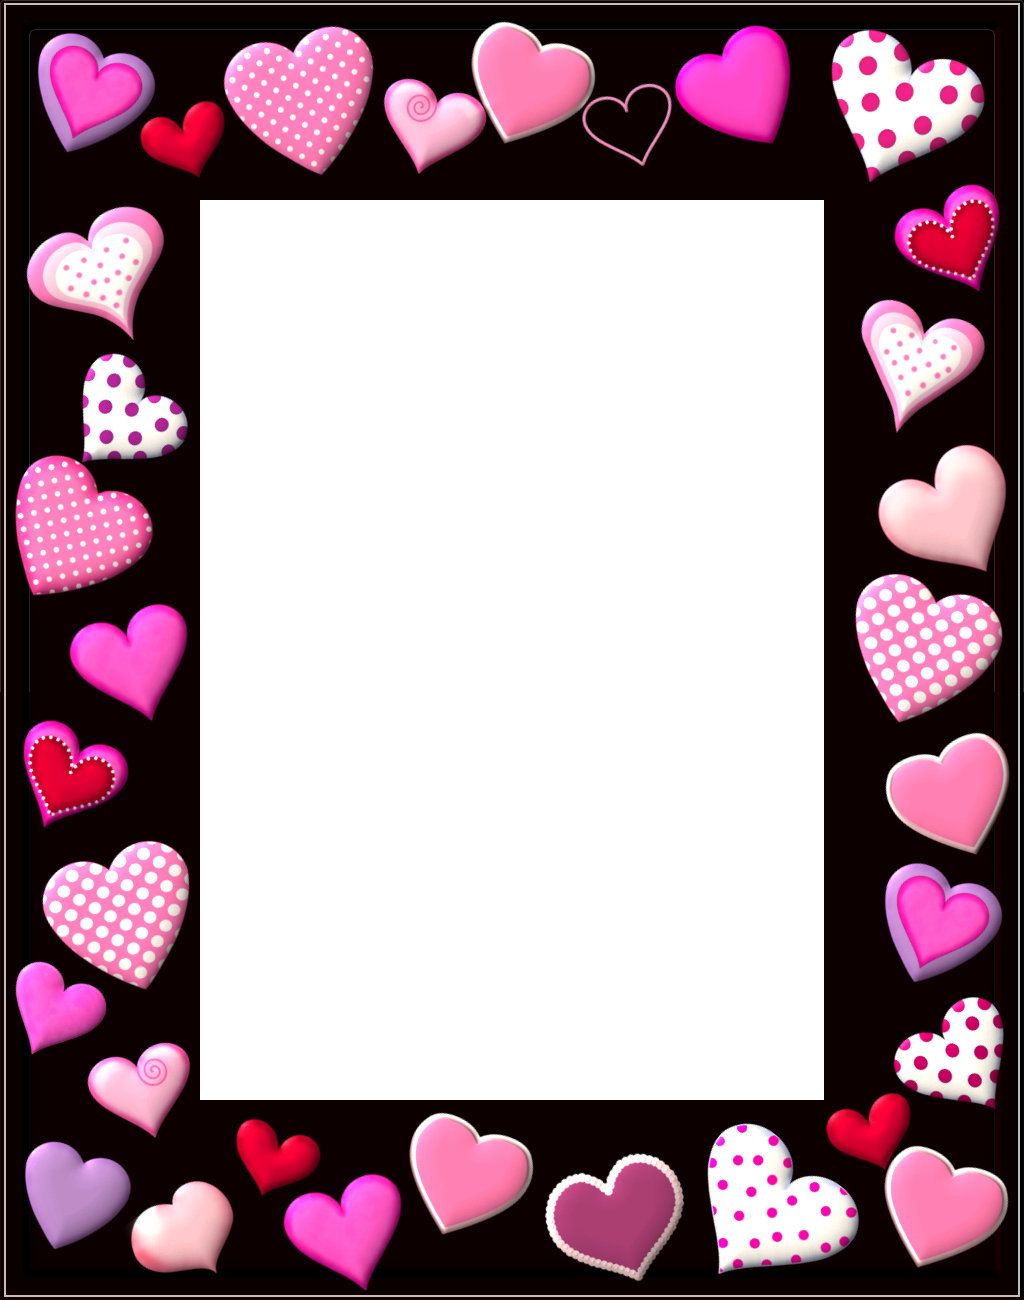 Pin By Elizabeth Prentice On Picture Boarders Pinterest Frame